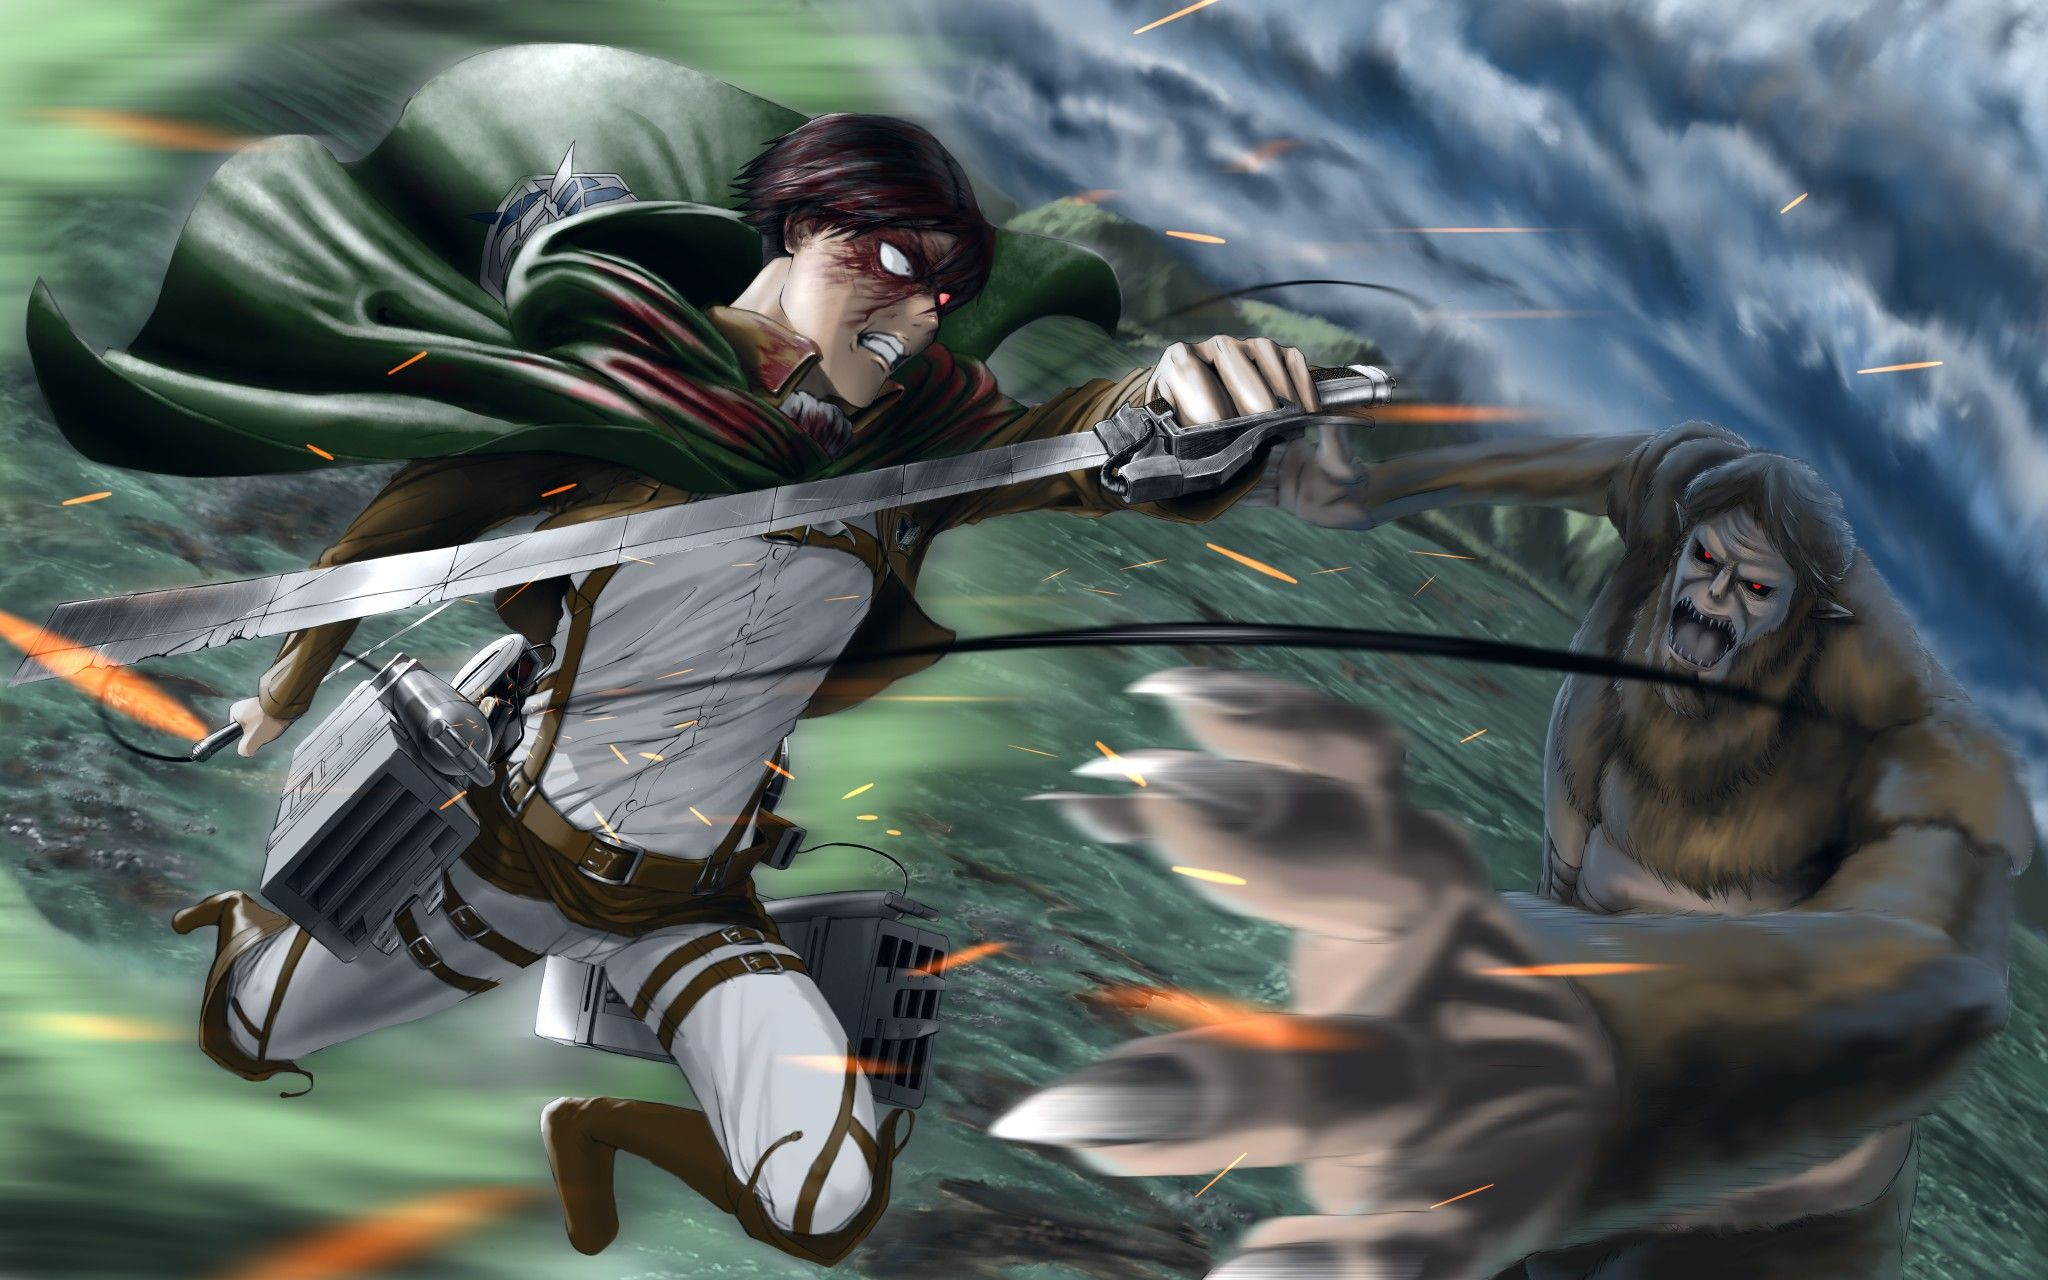 Pin By Rina On Wallpapers Landscape Attack On Titan Art Attack On Titan Attack On Titan Levi